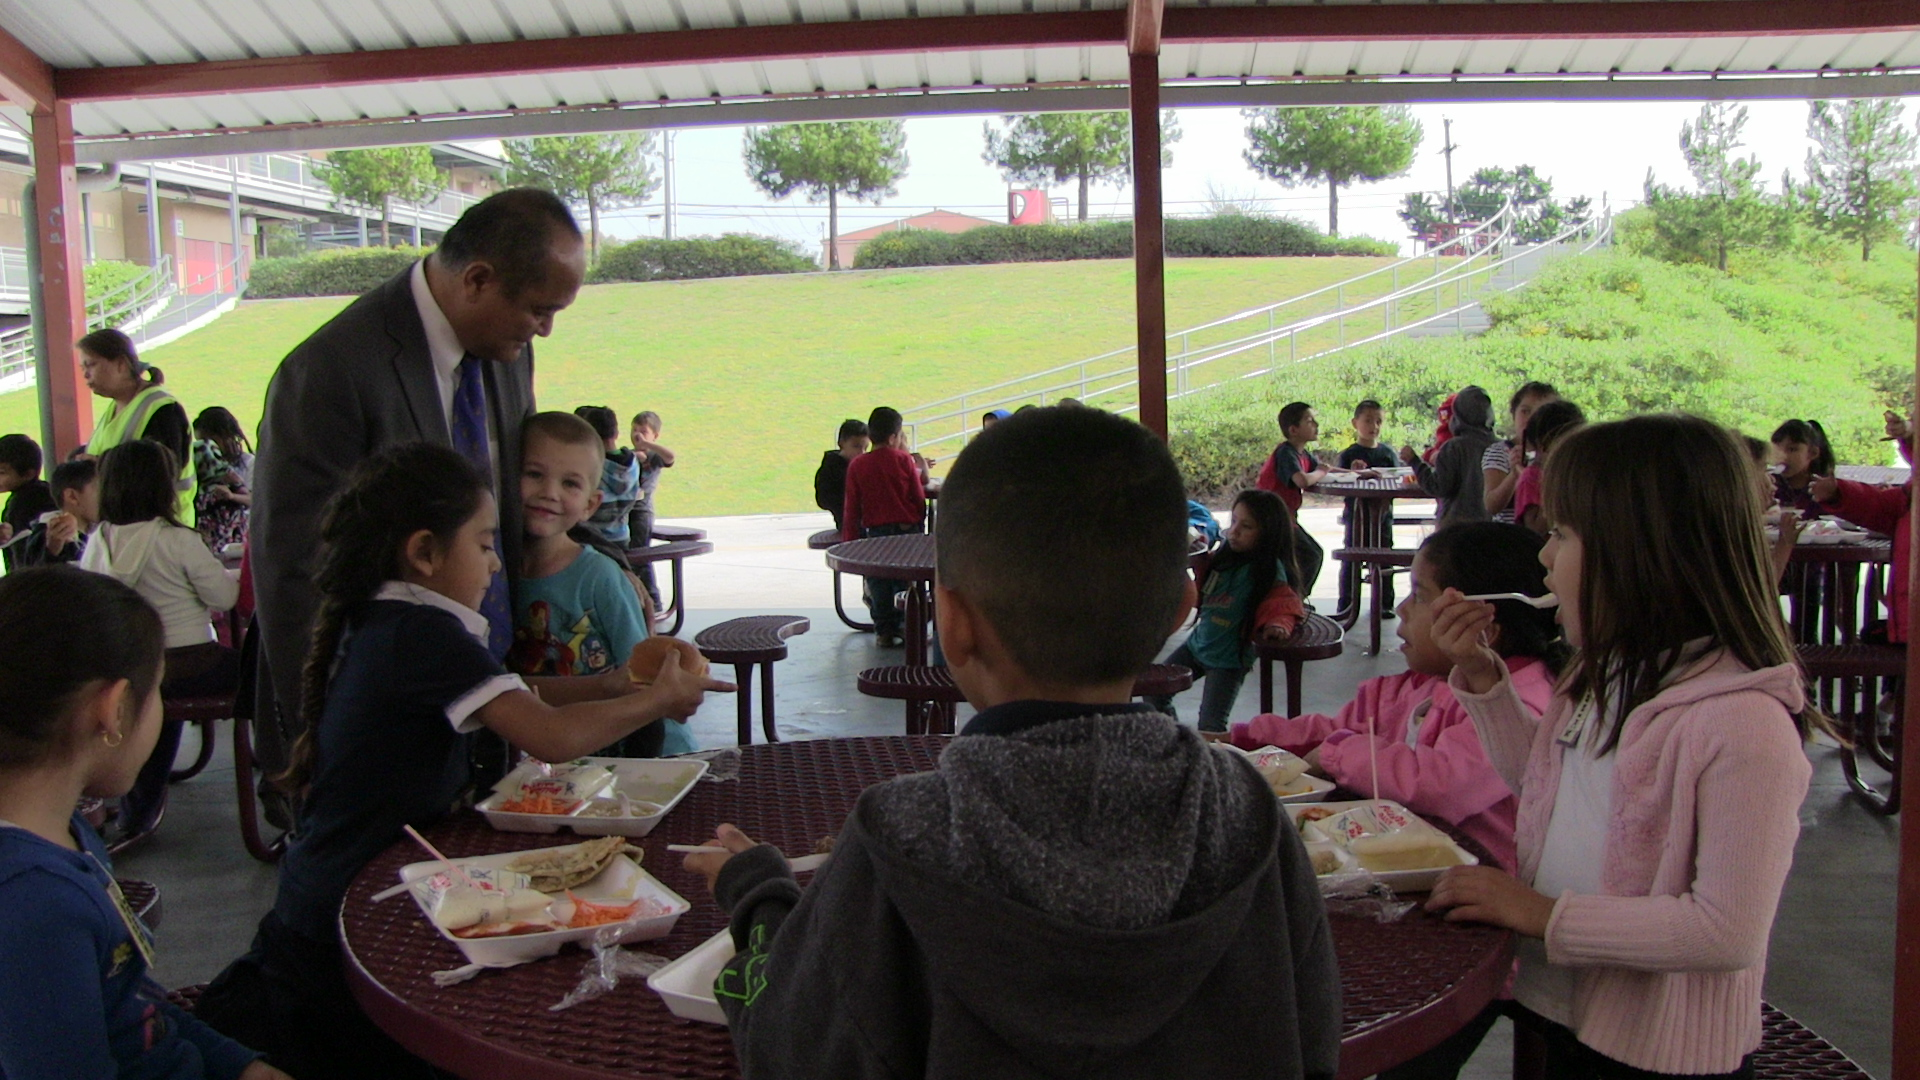 It takes Principal Godwin Higa a while to walk through the lunch courtyard. Every few steps, a child runs up to talk with him.